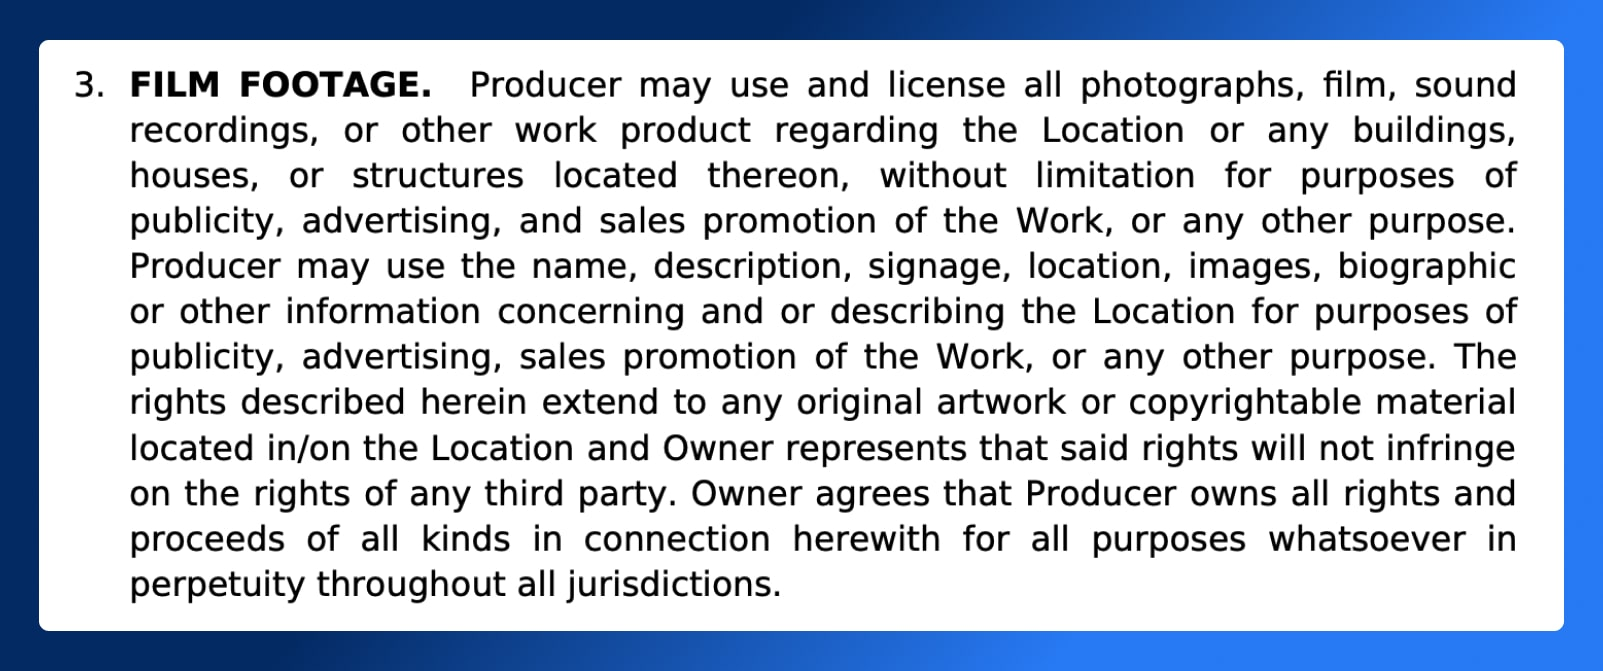 Location Release Form - Film Footage Section - Wrapbook